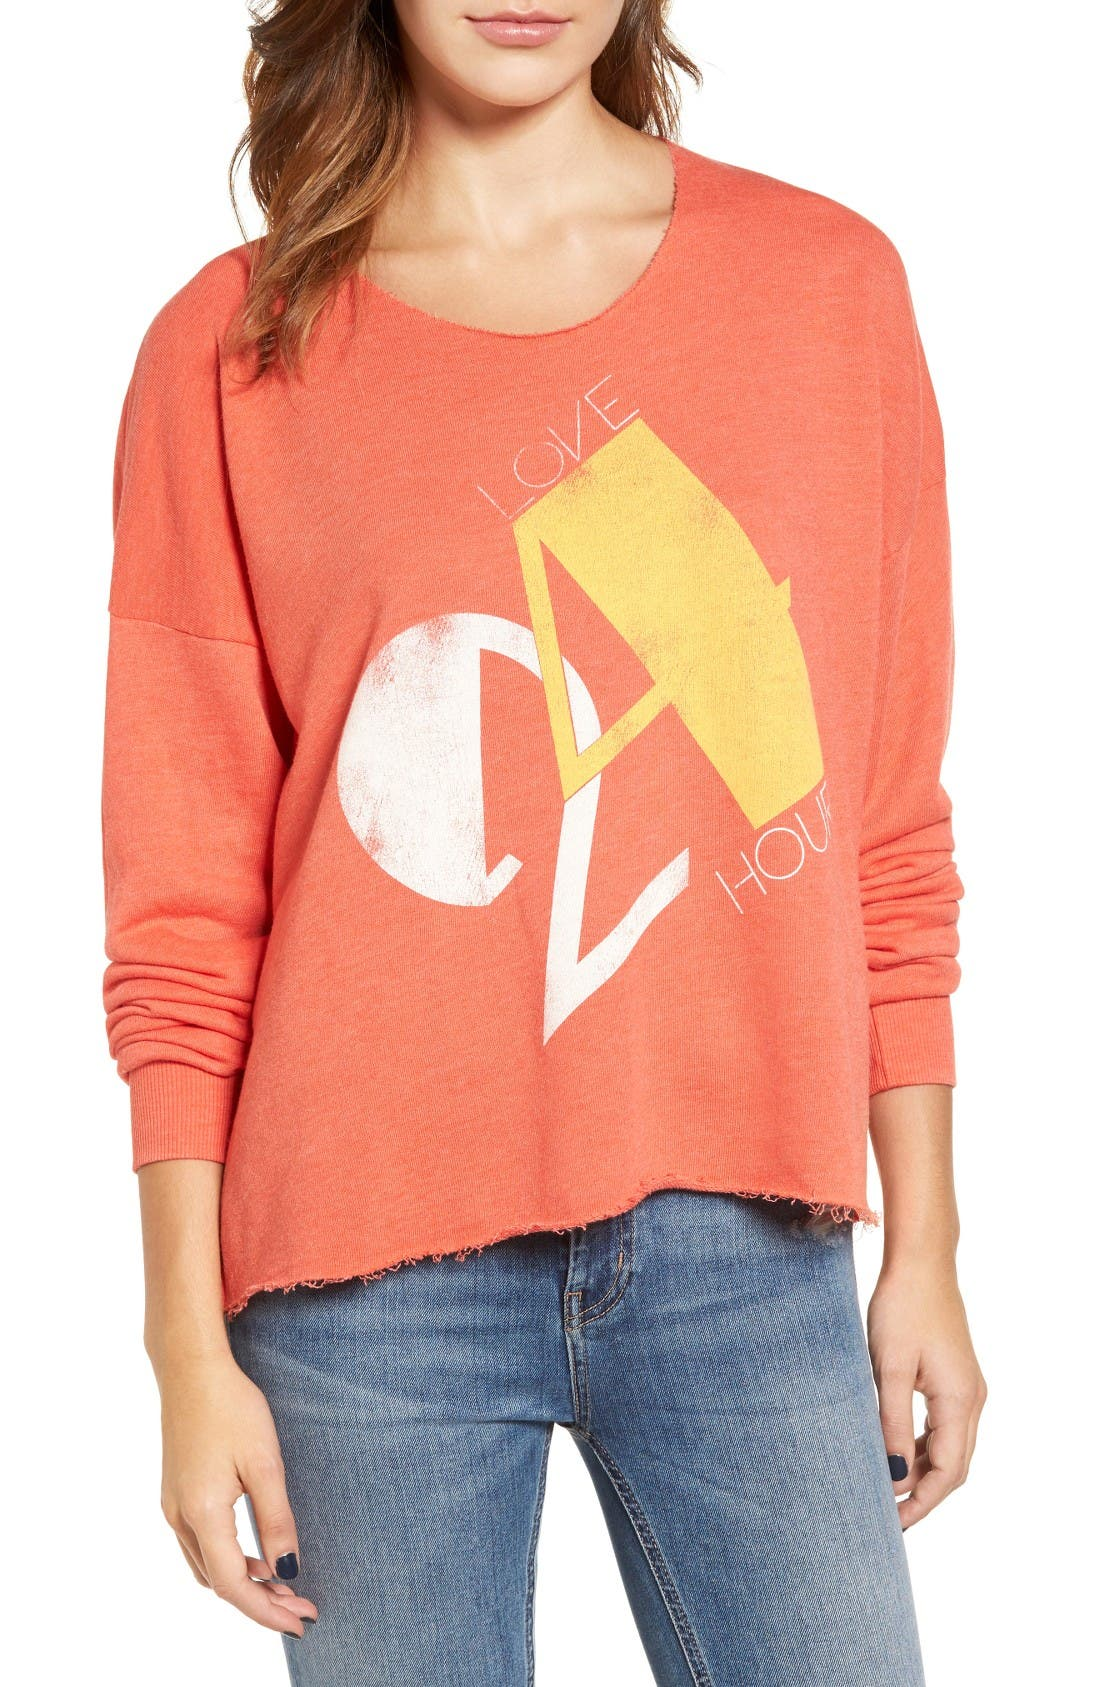 Love 24/7 Sweatshirt,                             Main thumbnail 1, color,                             Electric Red